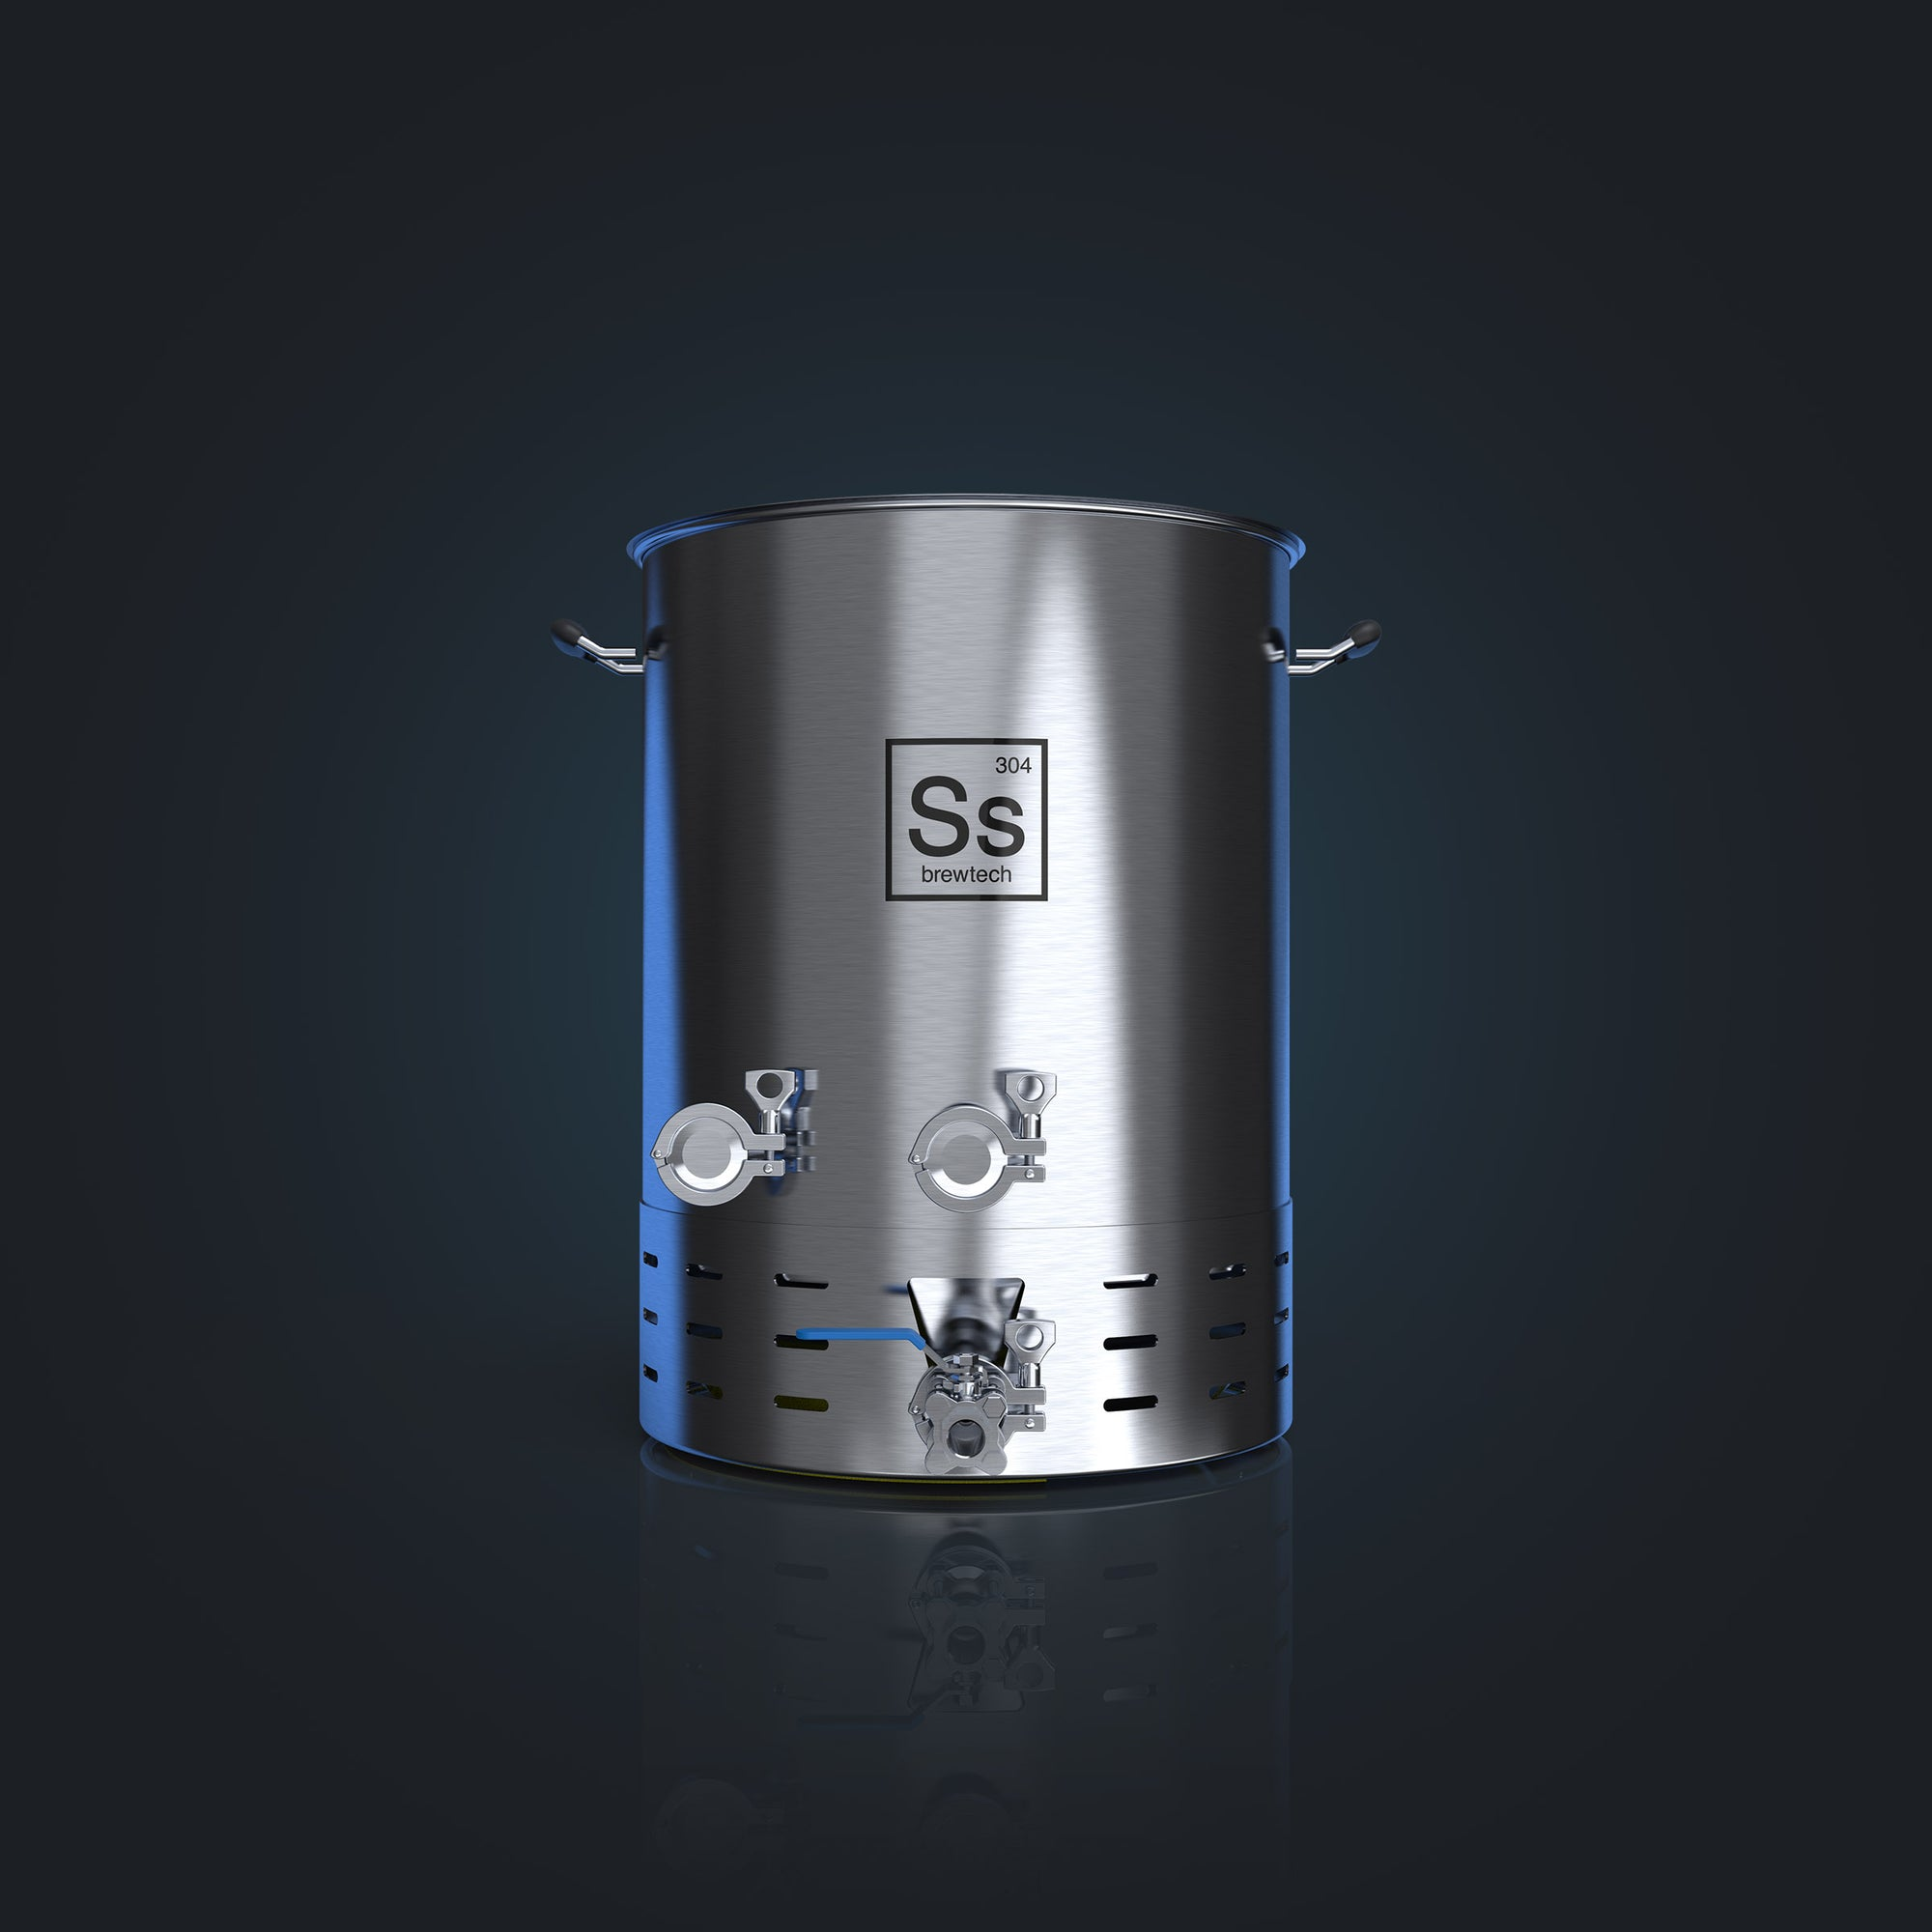 Ss Brew Kettle Brewmaster Edition | professional brewing features on home brew sized kettle